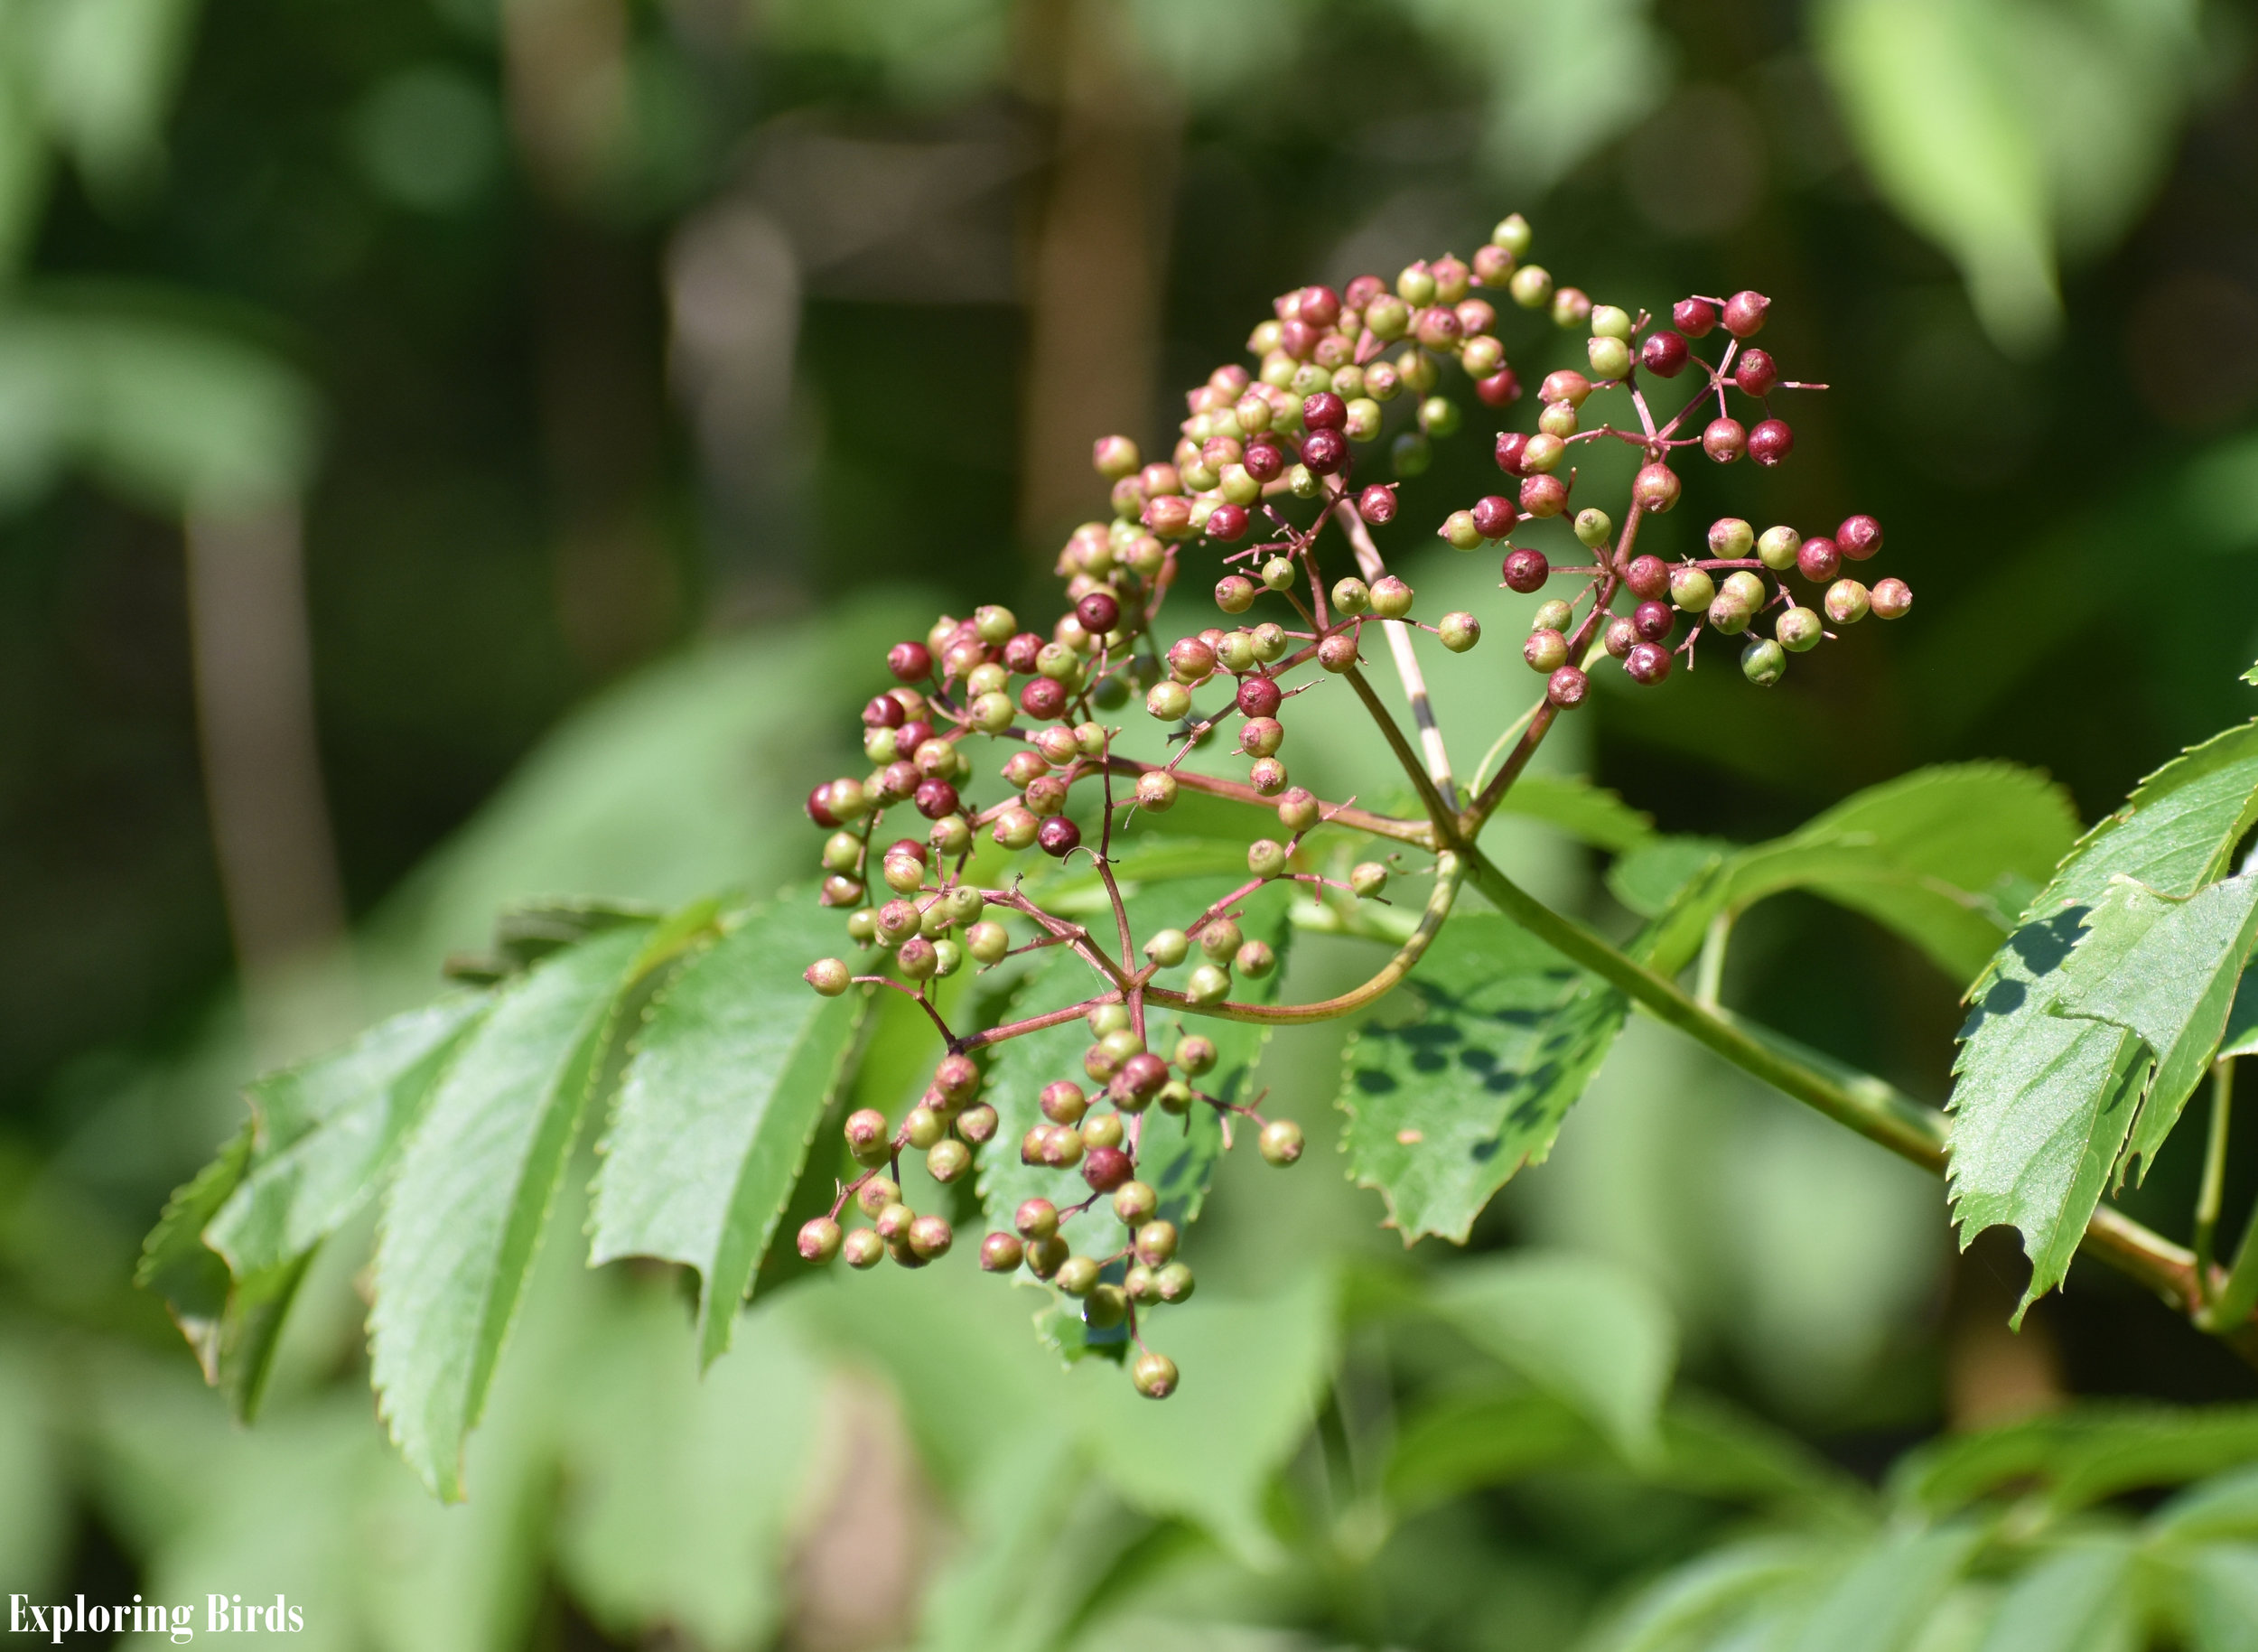 Elderberry is a plant that attracts birds